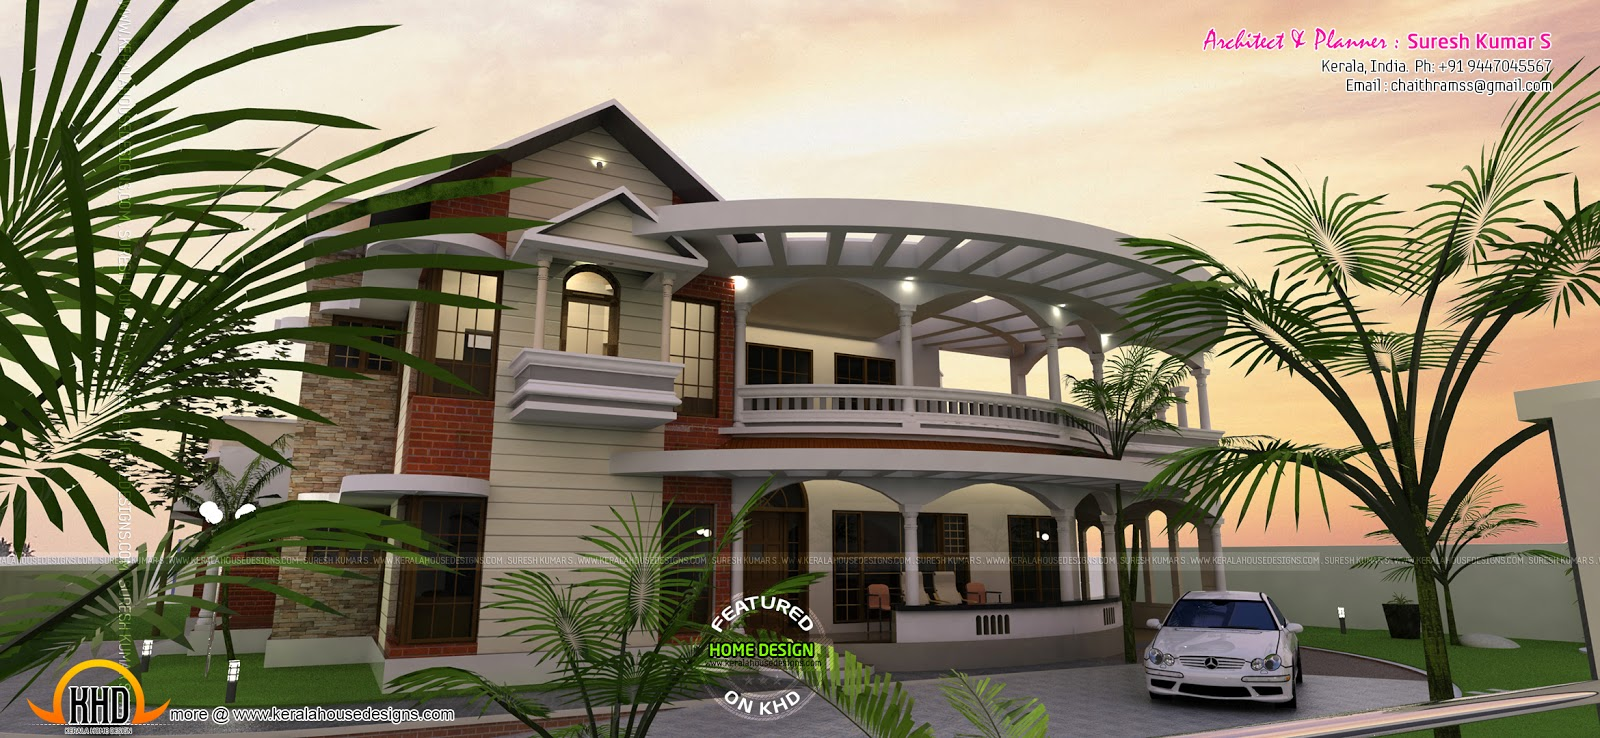 The 19 Best Front Balcony Designs  House Plans  53964